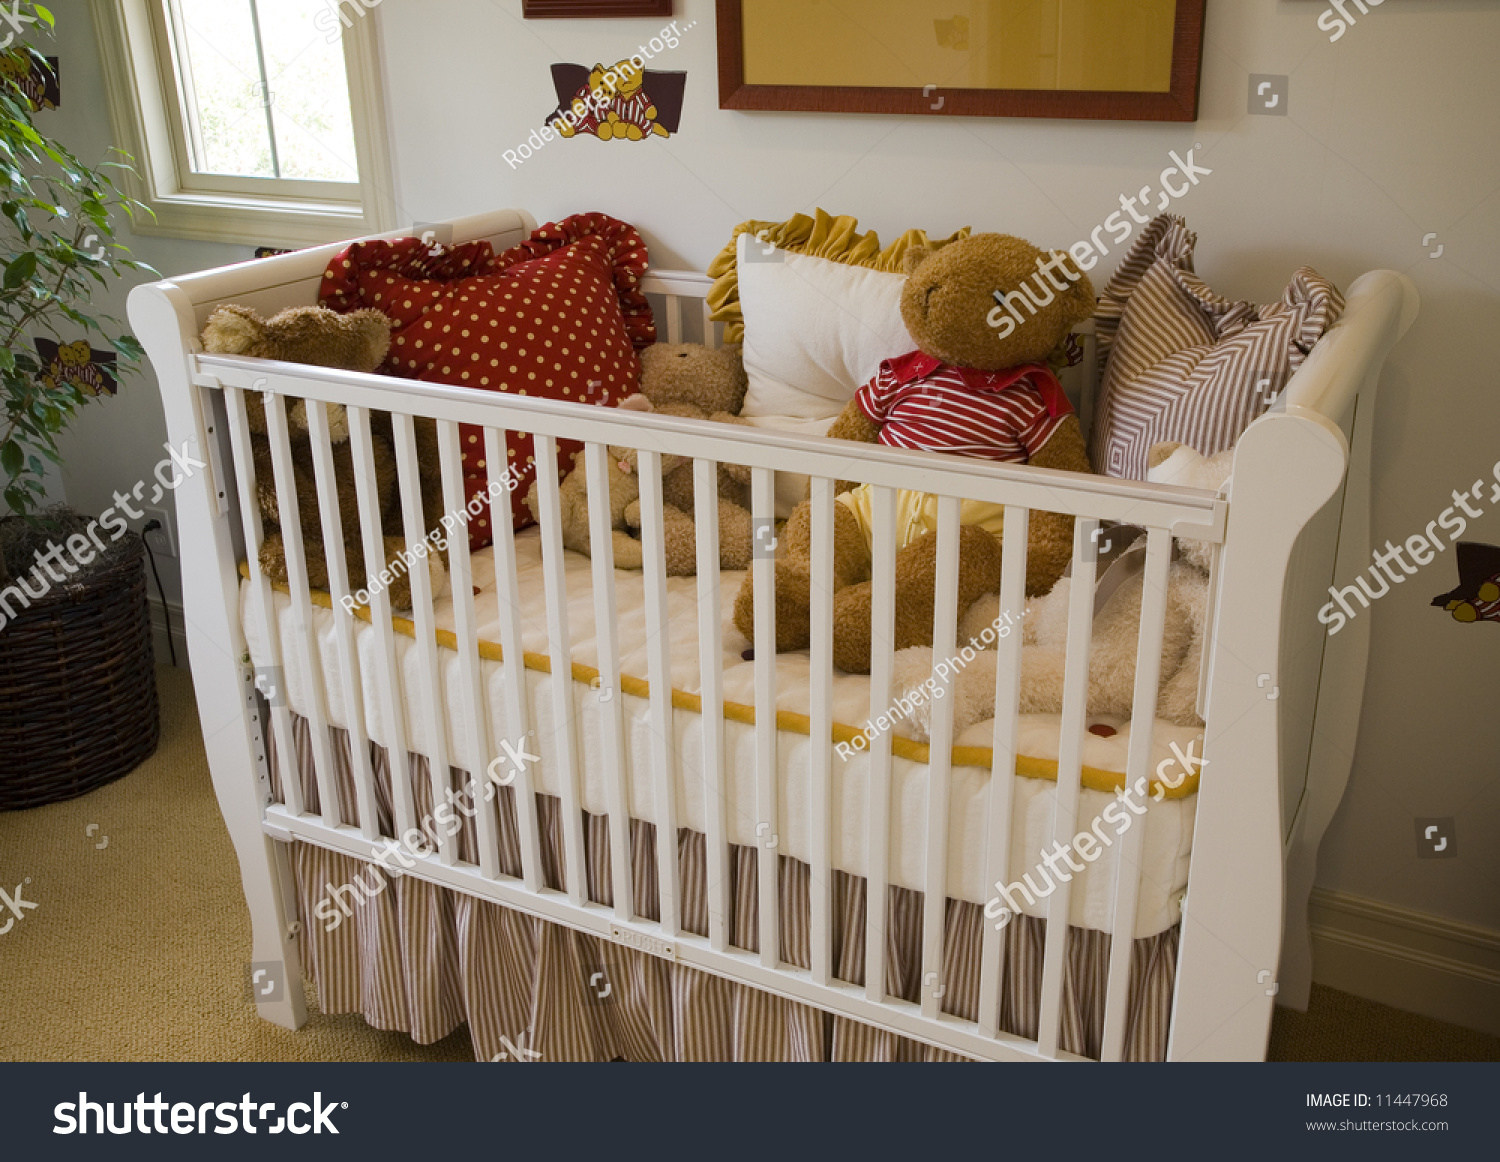 Crib pillows babies - Save To A Lightbox